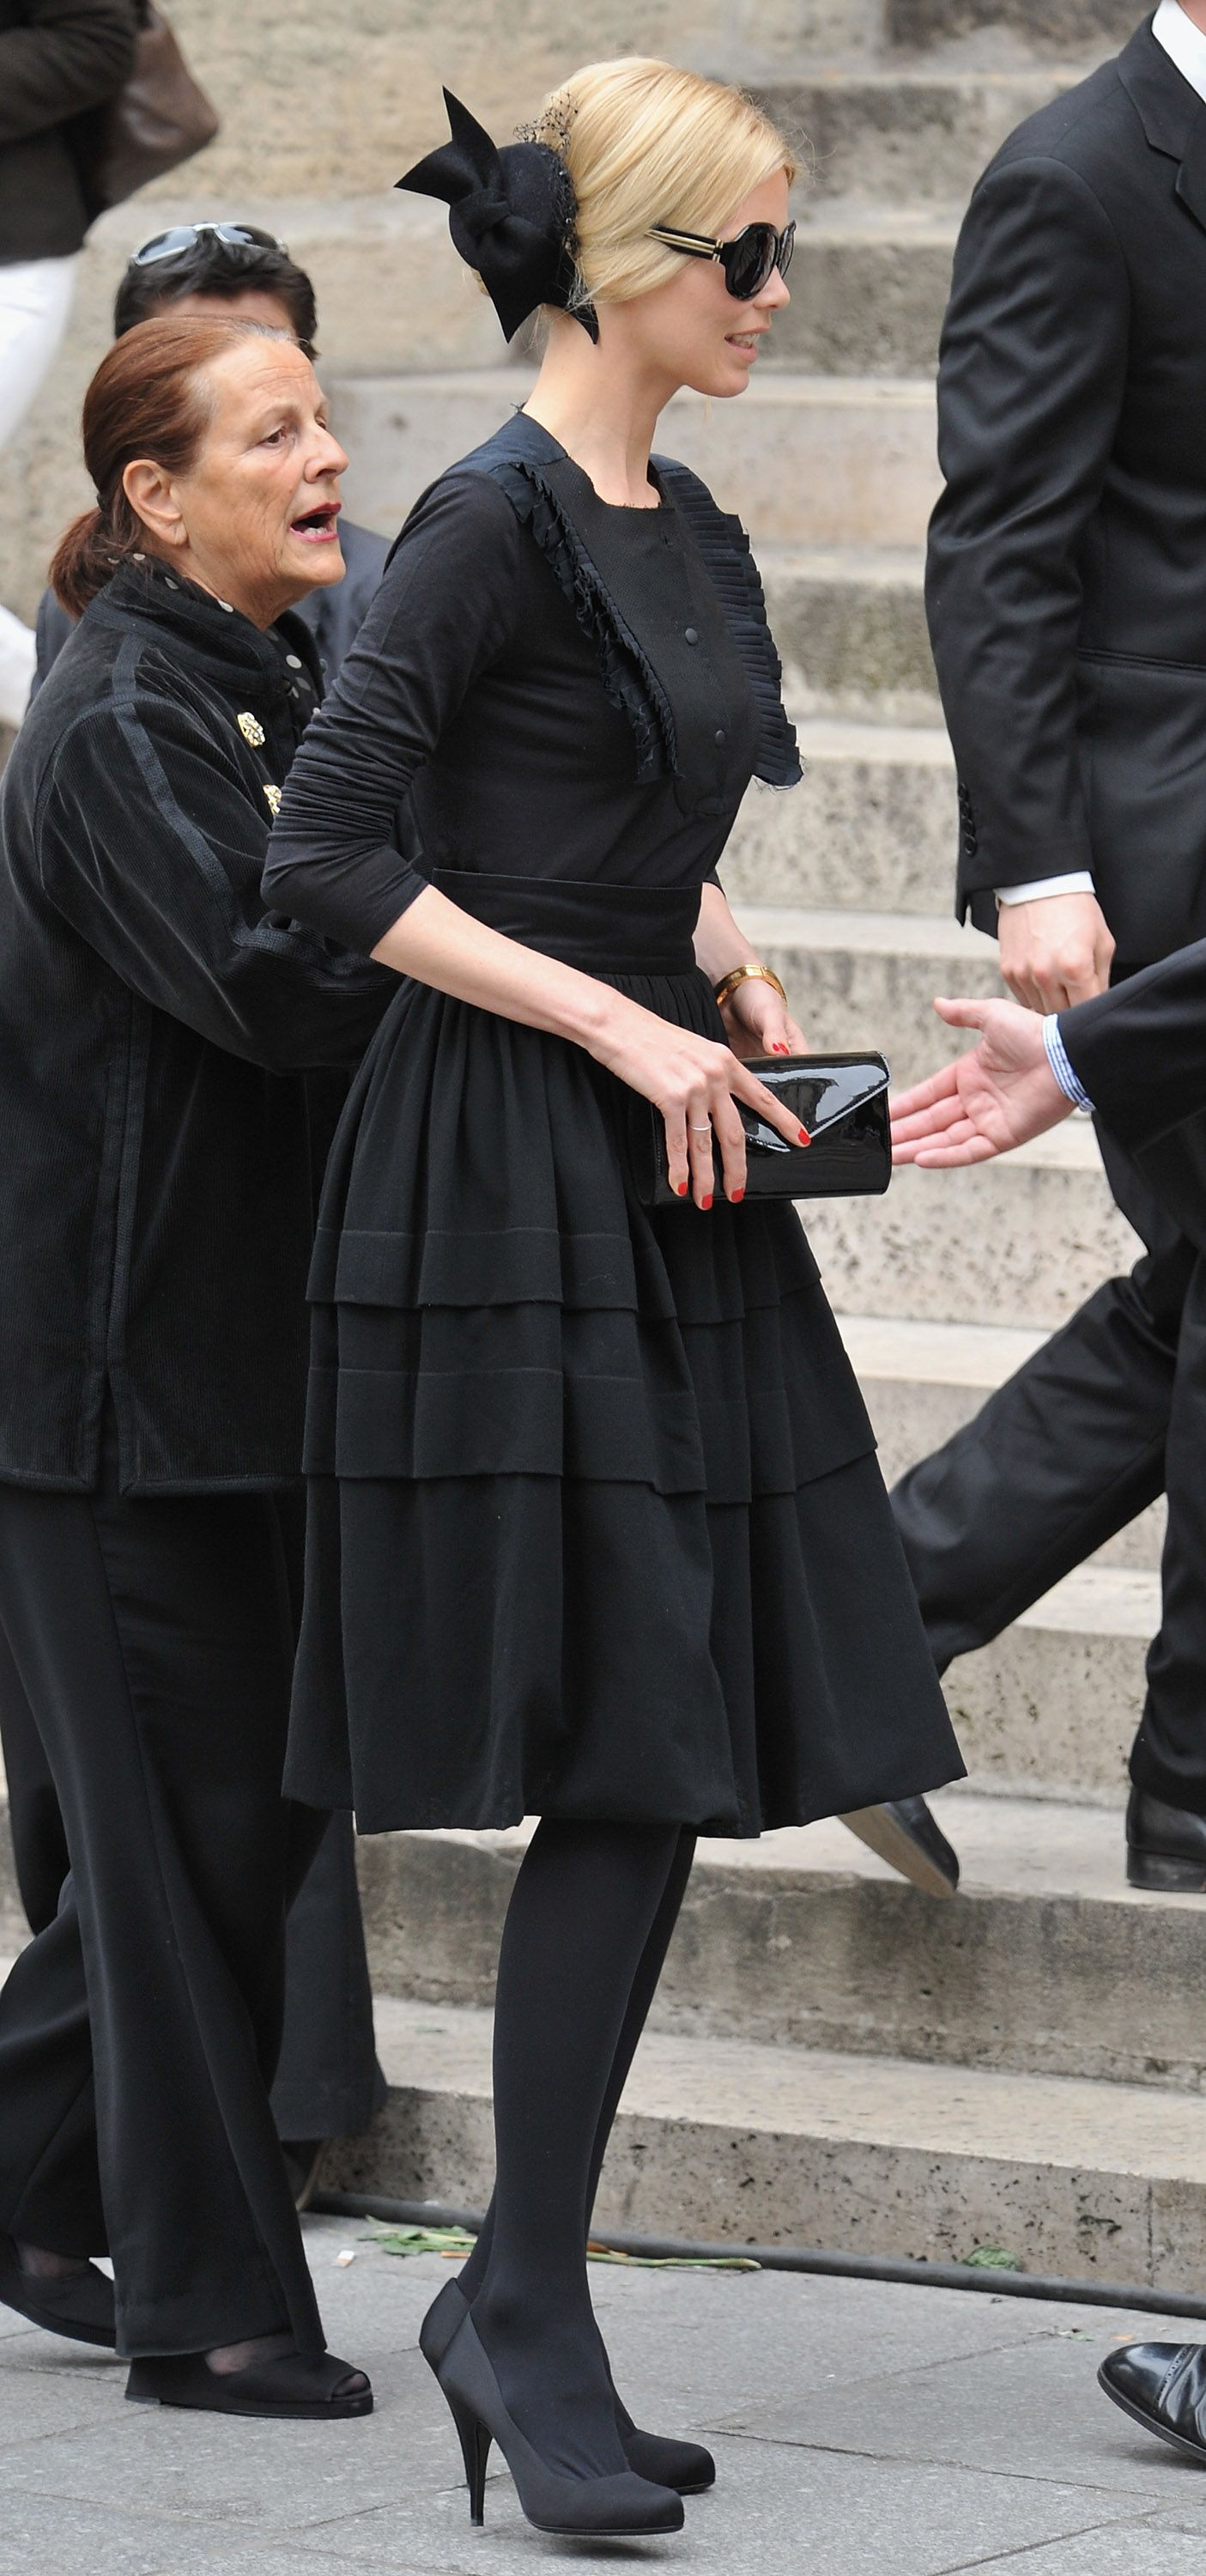 Claudia Schiffer Funeral Outfit Black Funeral Dress Funeral Dress [ 3000 x 1405 Pixel ]